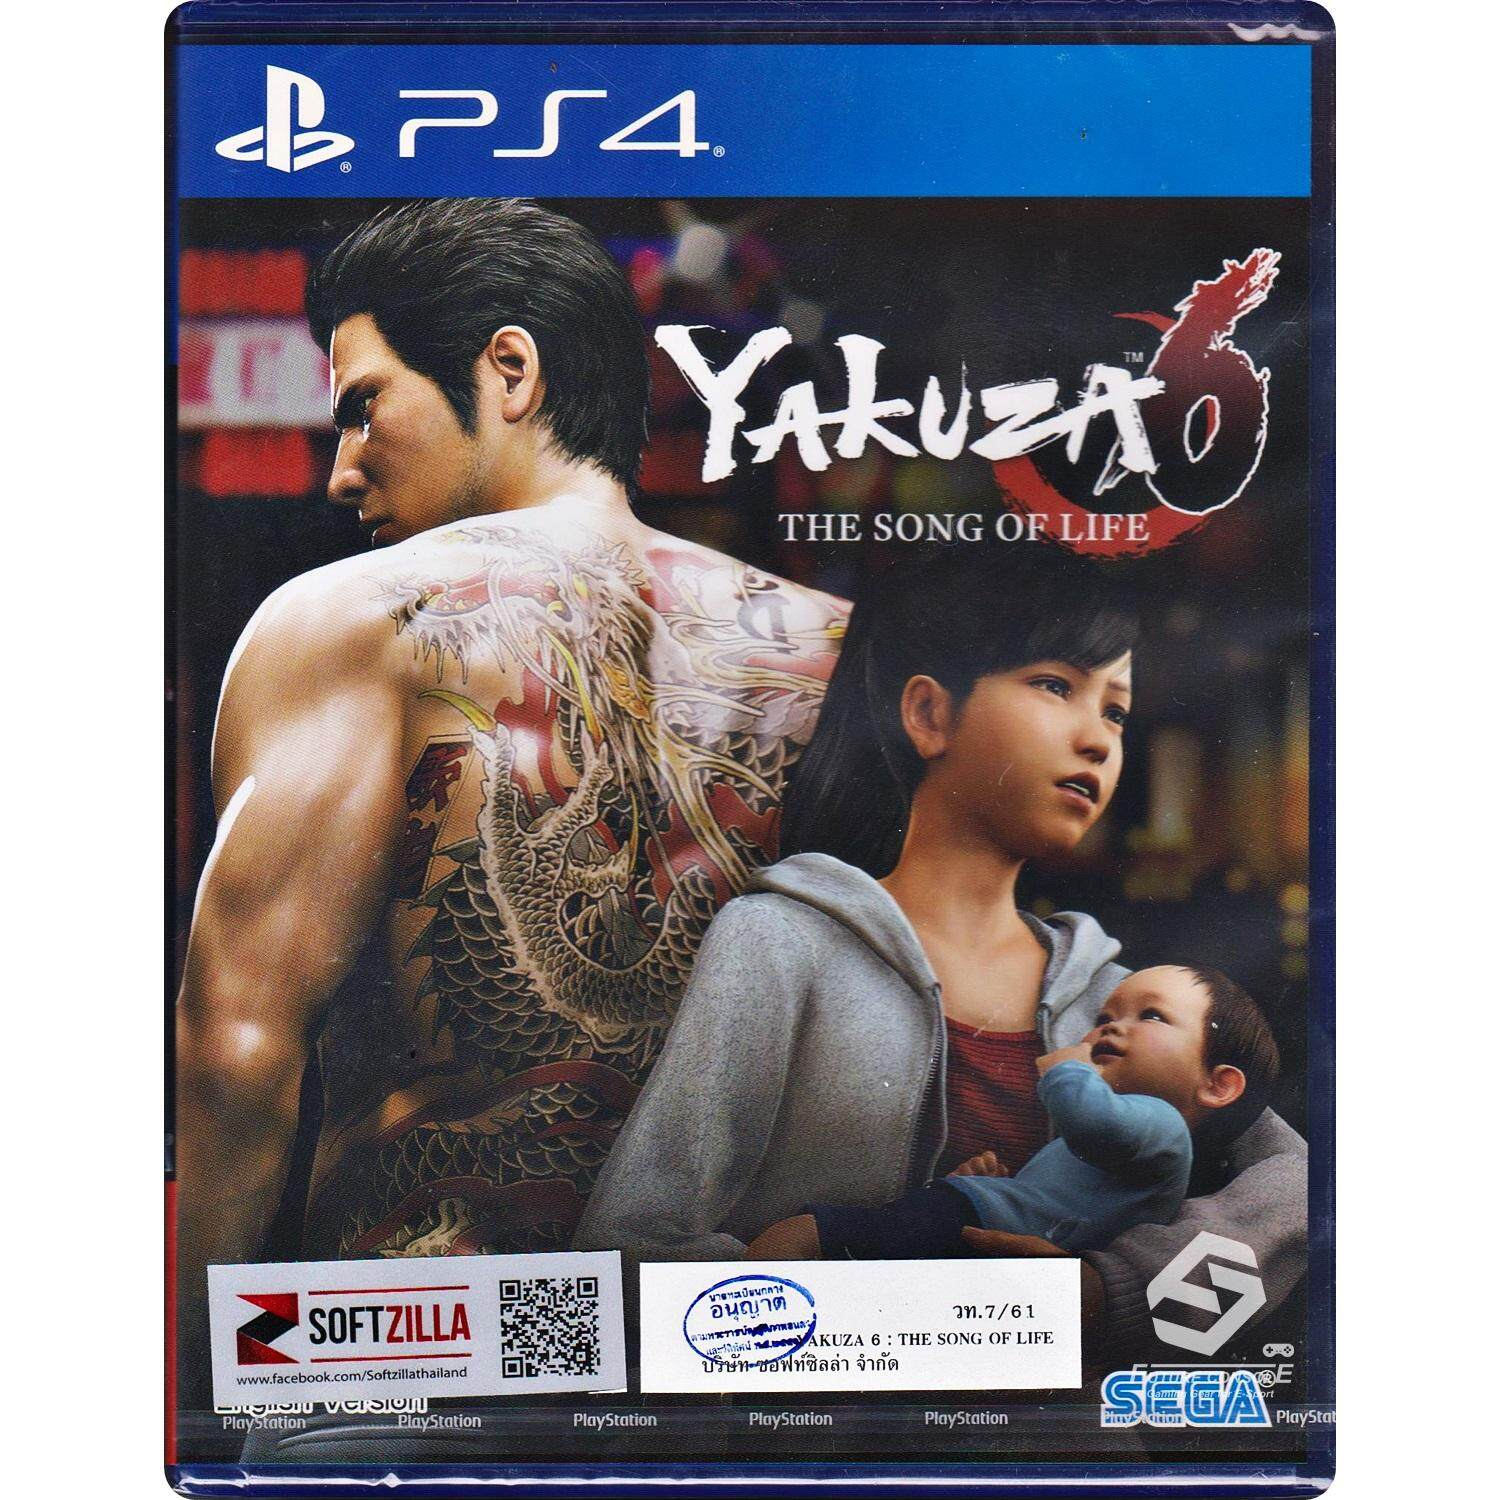 PS4 Game Yakuza 6: The Song of Life [Zone 3/Asia]